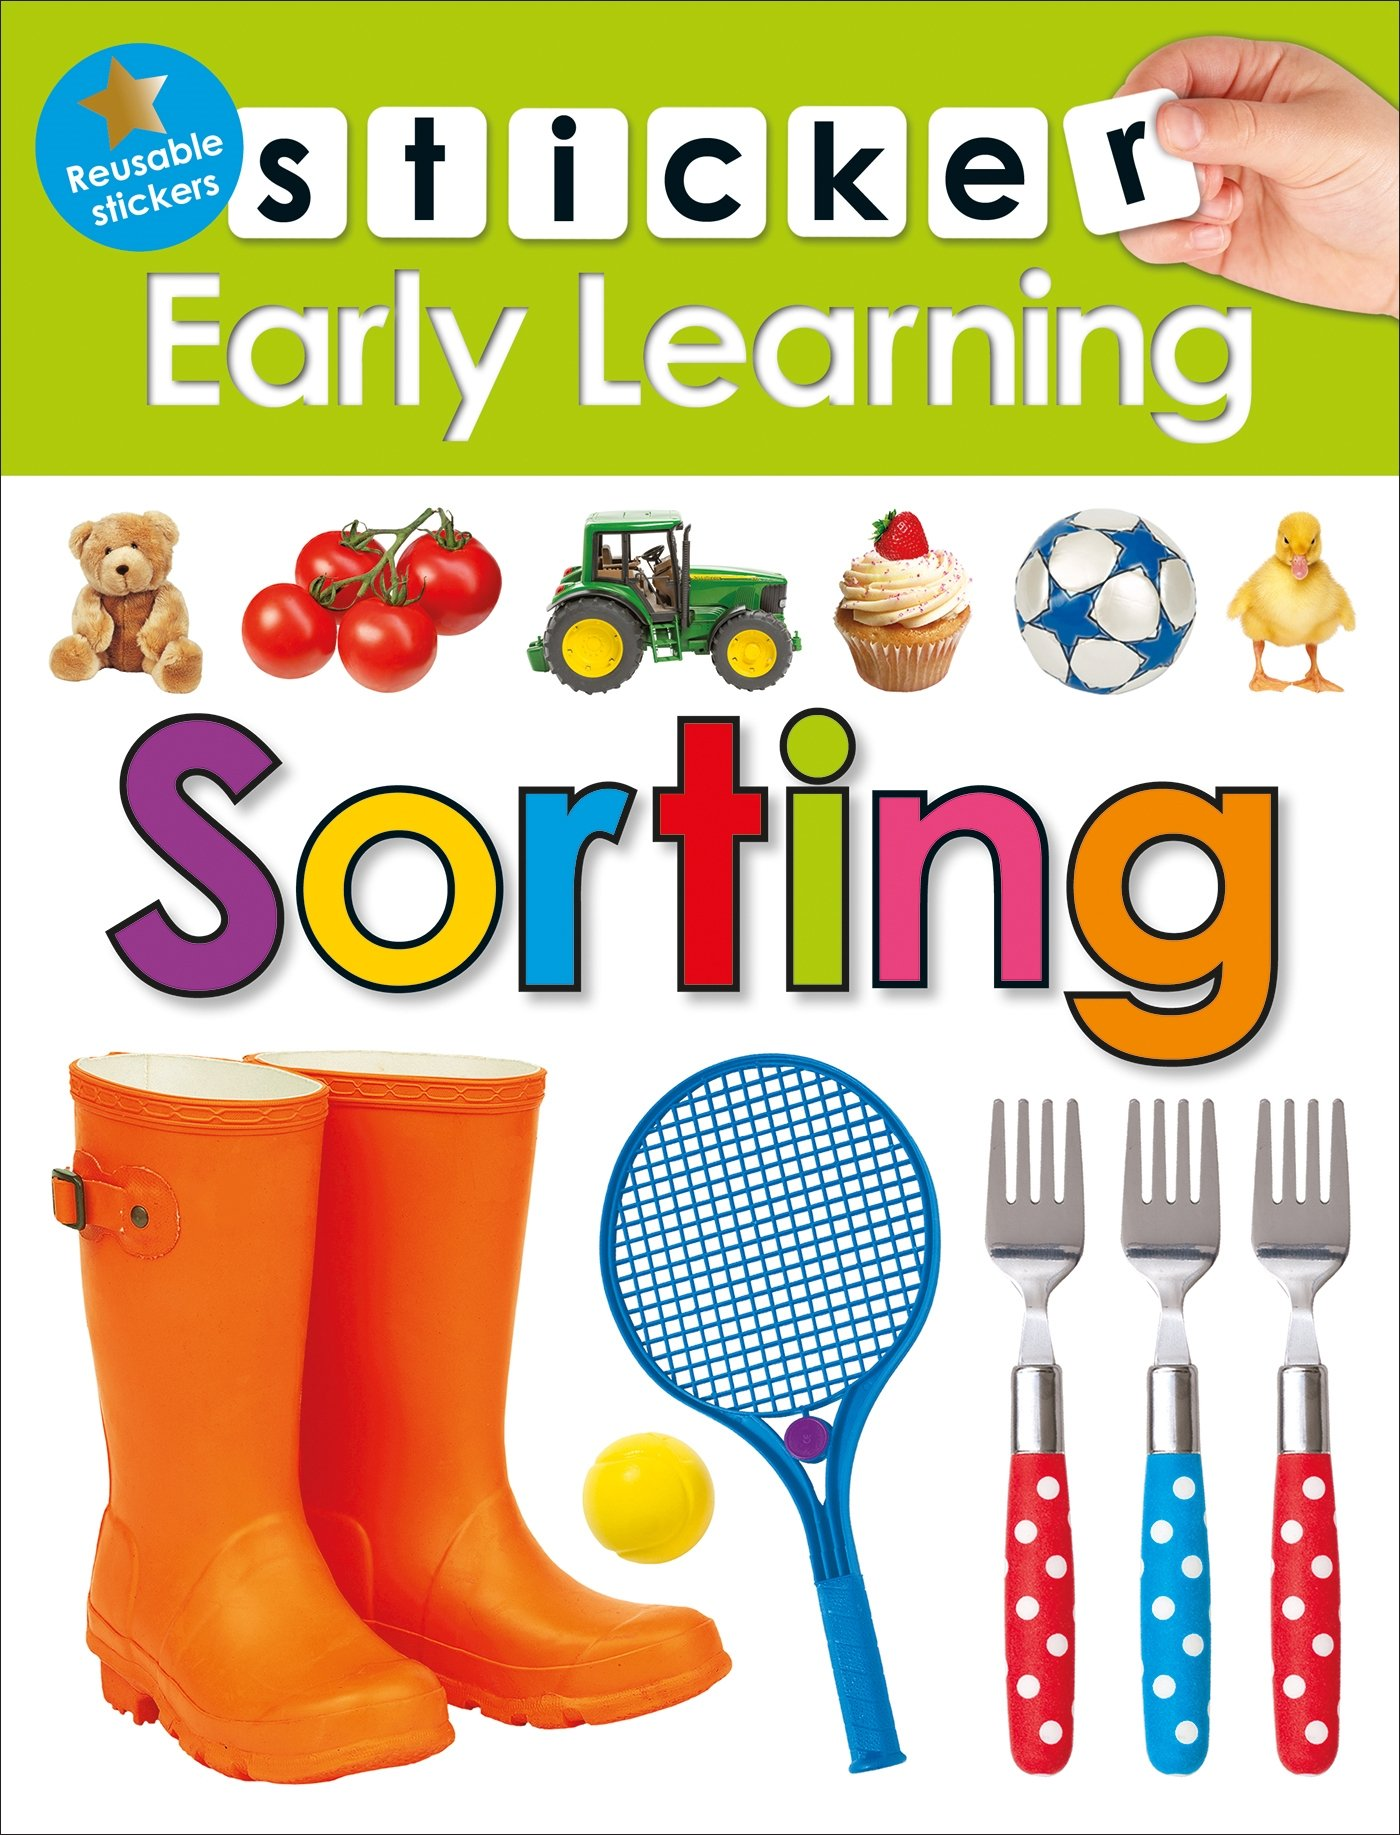 Sticker Early Learning Roger Priddy